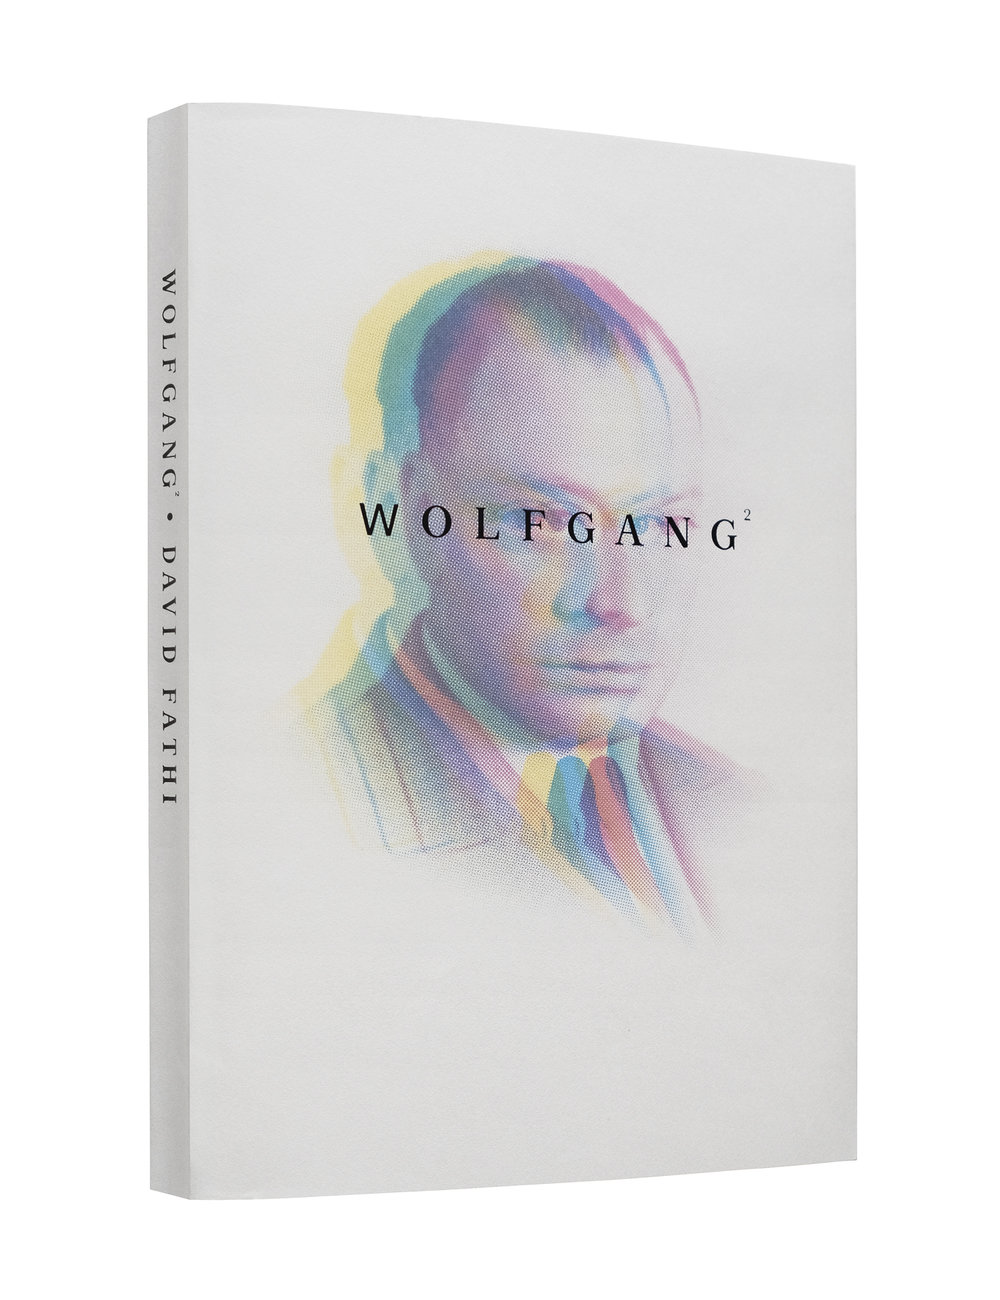 WOLFGANG, second edition.